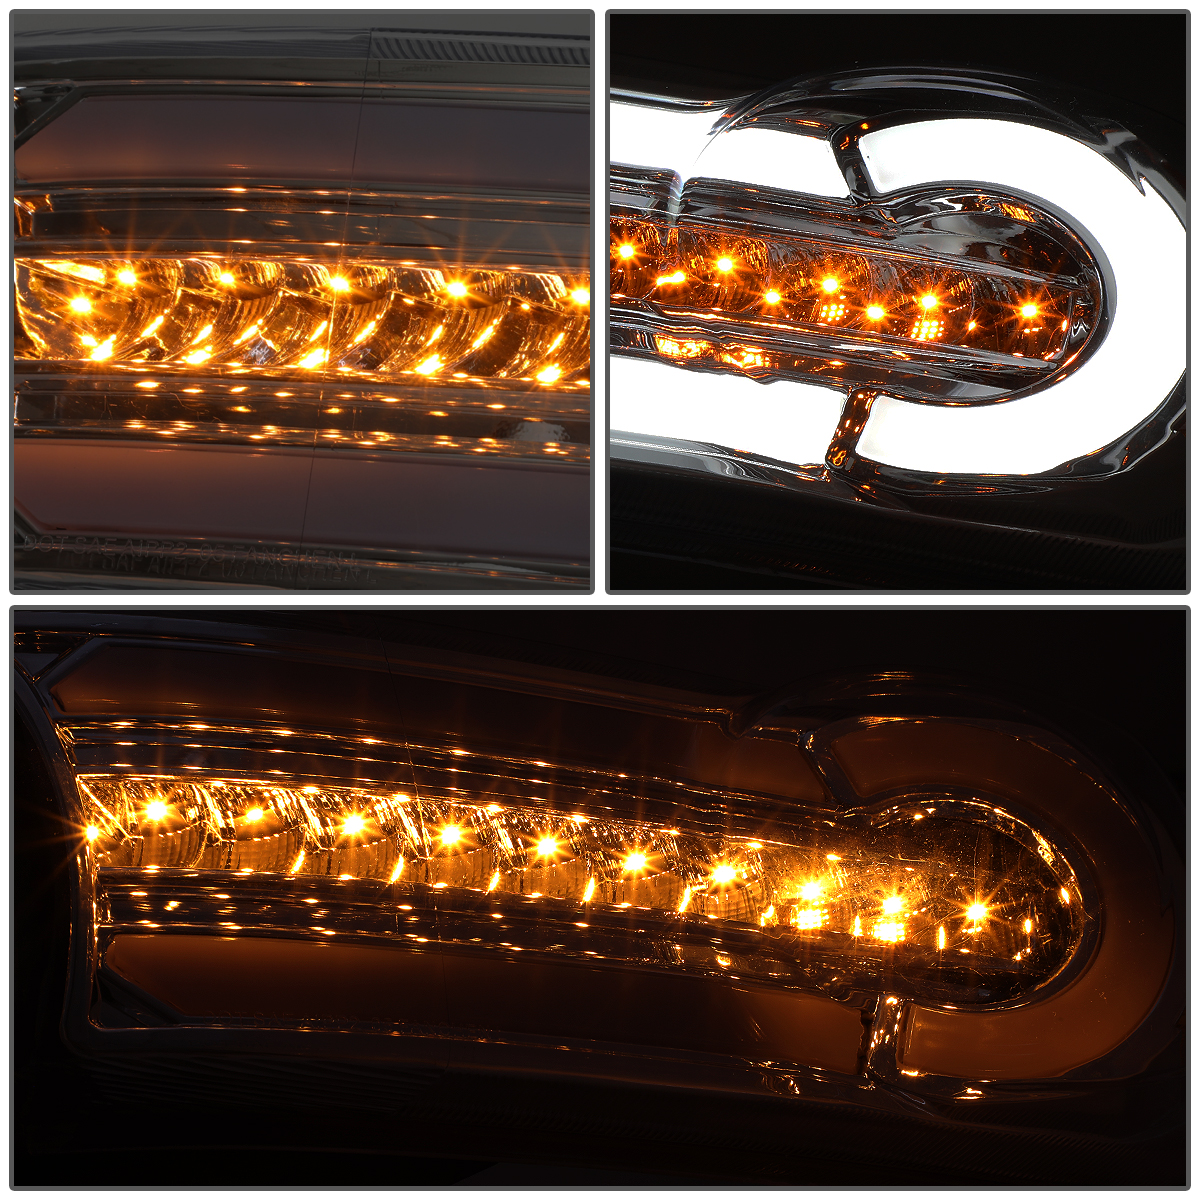 07-14 Toyota FJ Cruiser LED DRL [Sequential Signal] Halo Headlights